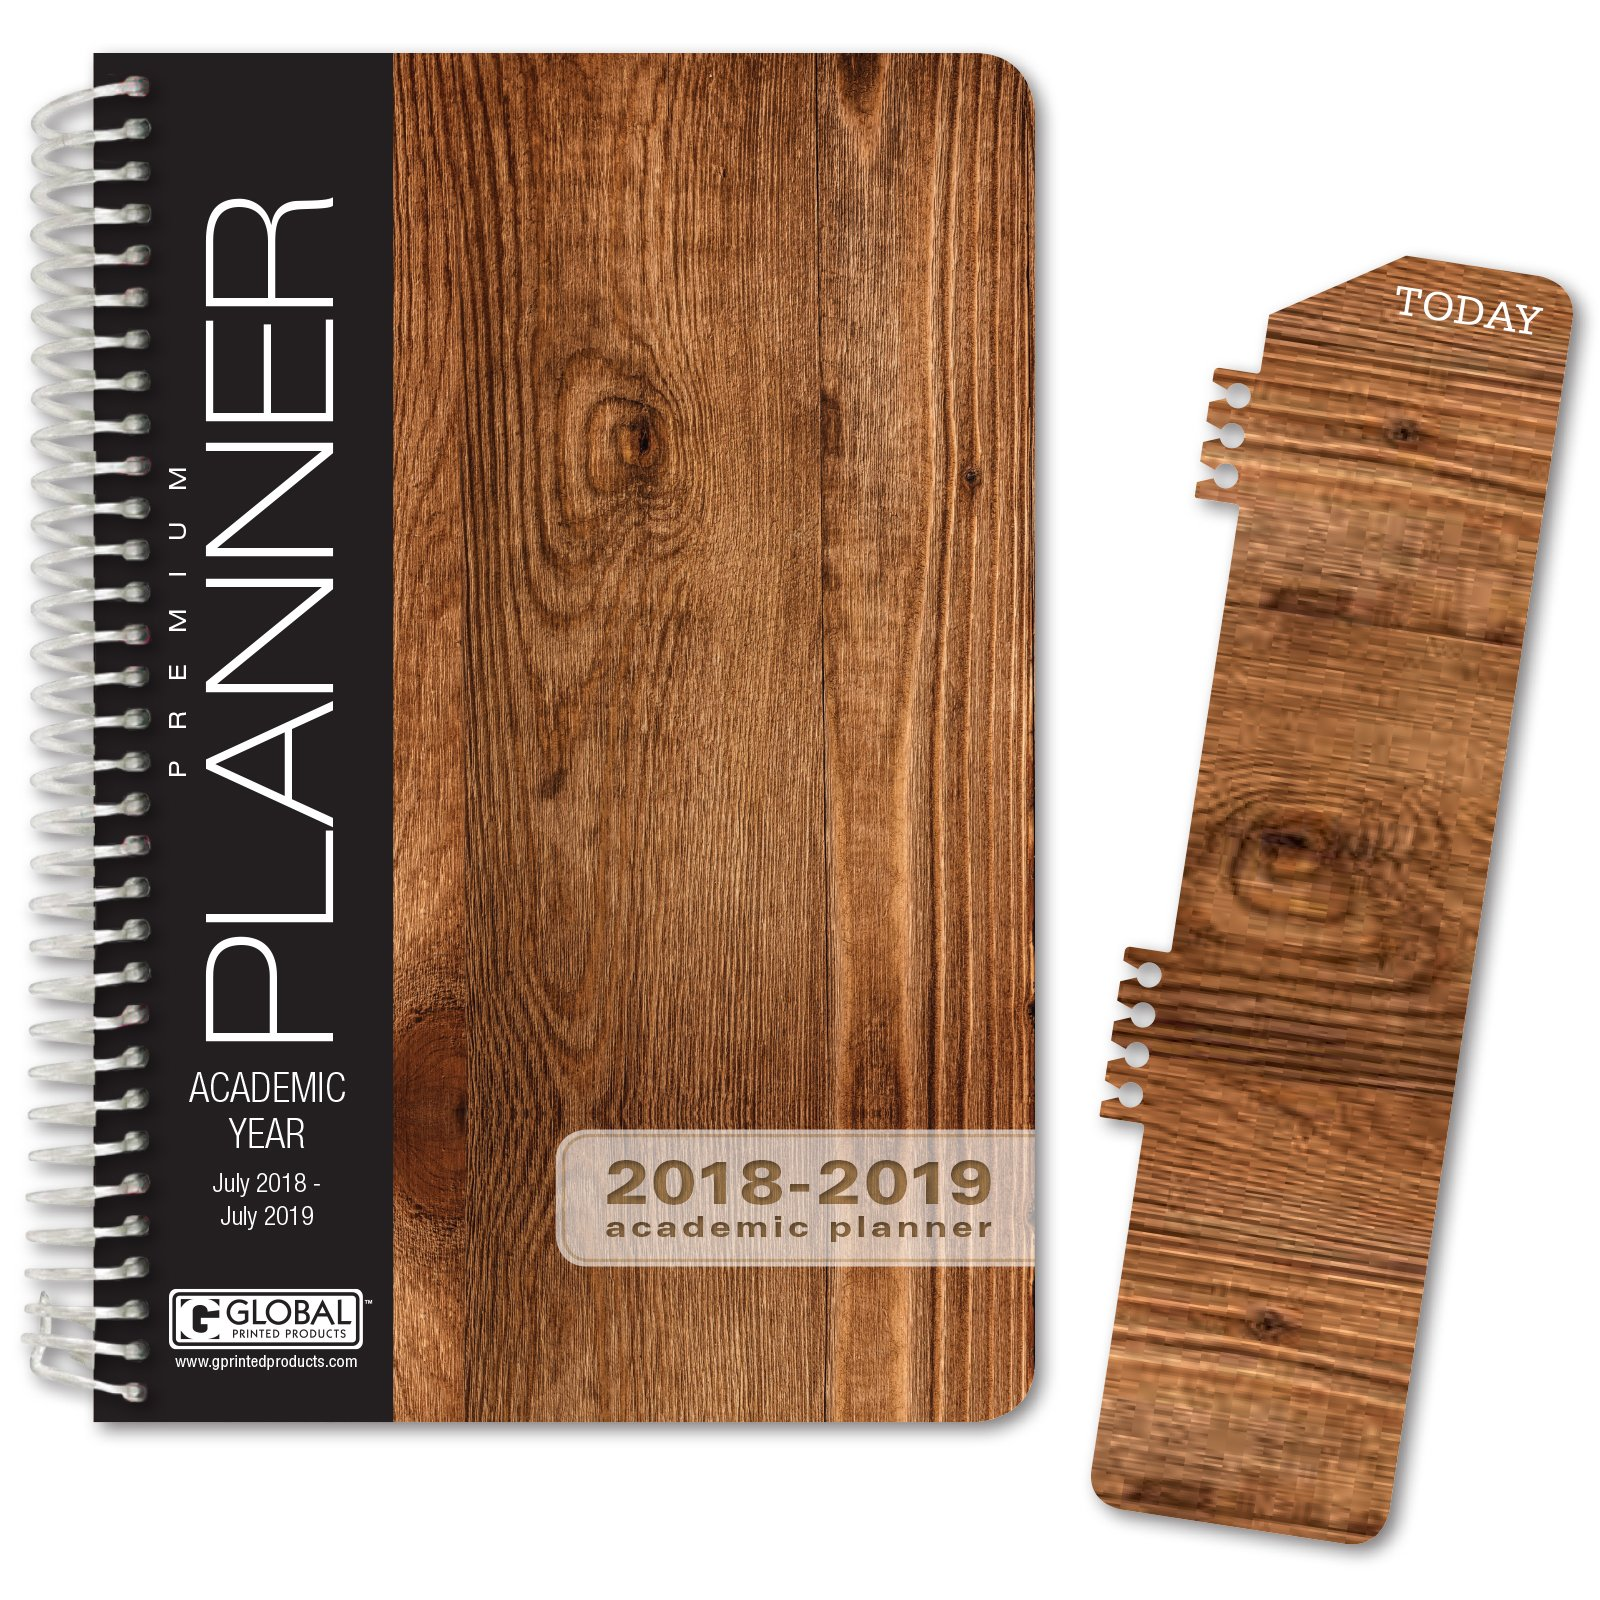 HARDCOVER Academic Year Planner 2018-2019 - 5.5''x8'' Daily Planner / Weekly Planner / Monthly Planner / Yearly Agenda. Bonus BOOKMARK (Woodgrain)